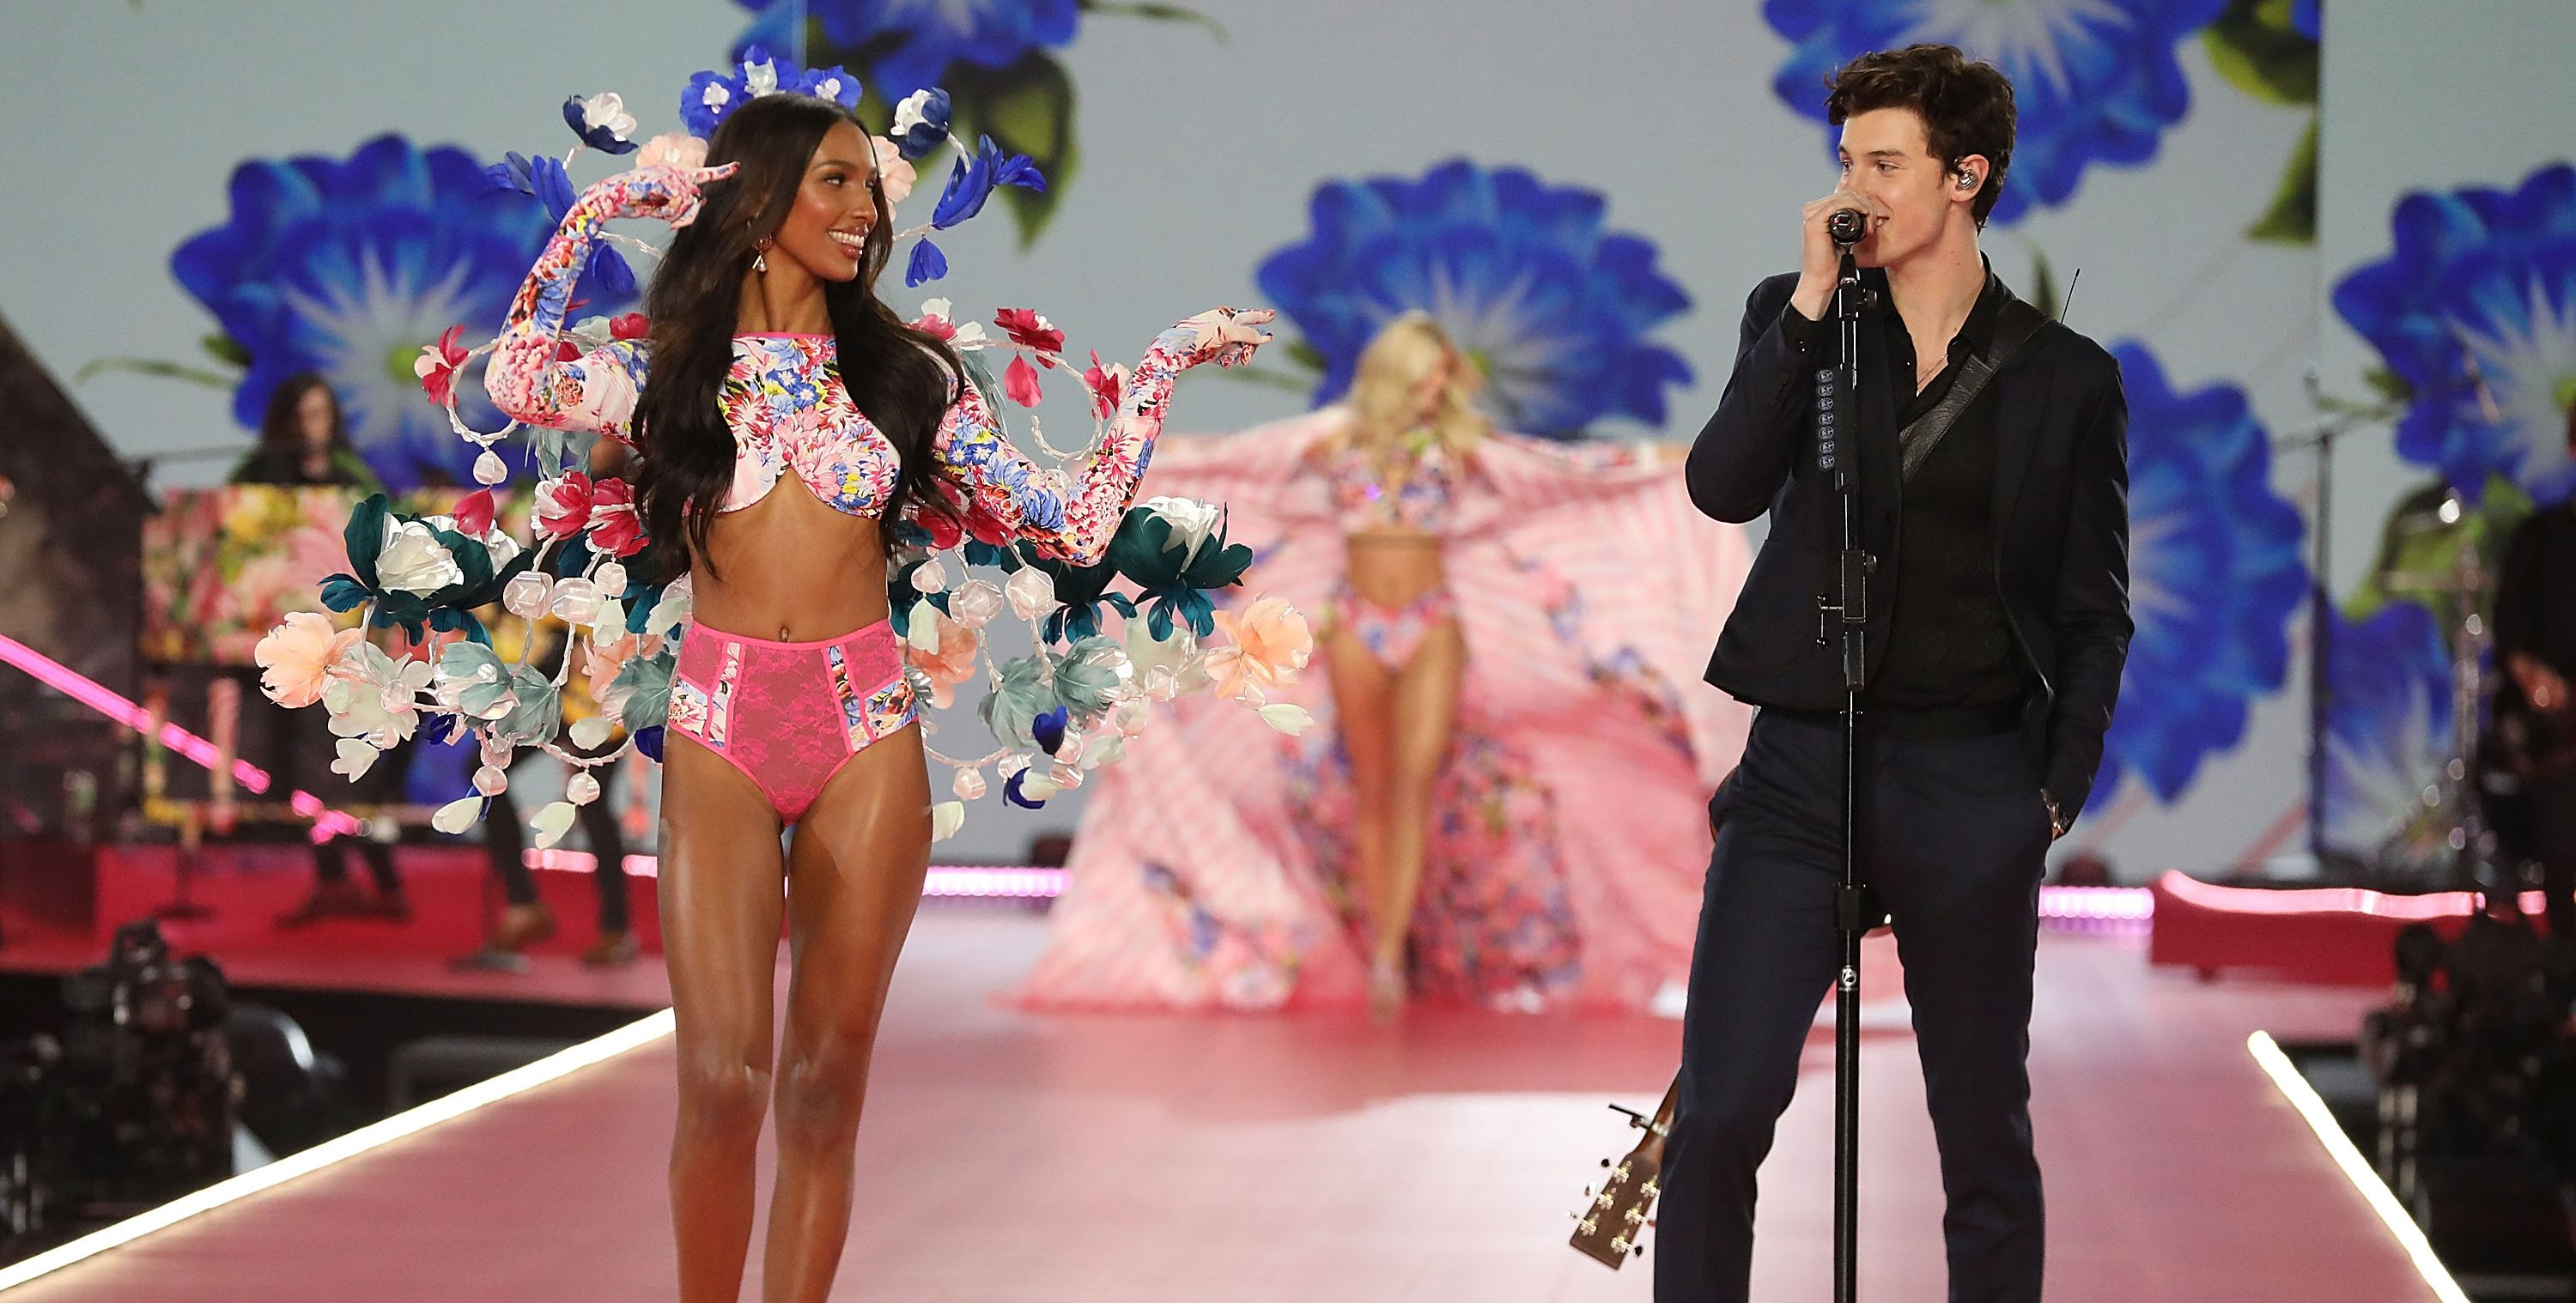 Victoria S Secret Fashion Show 2018 Musical Performers Full List